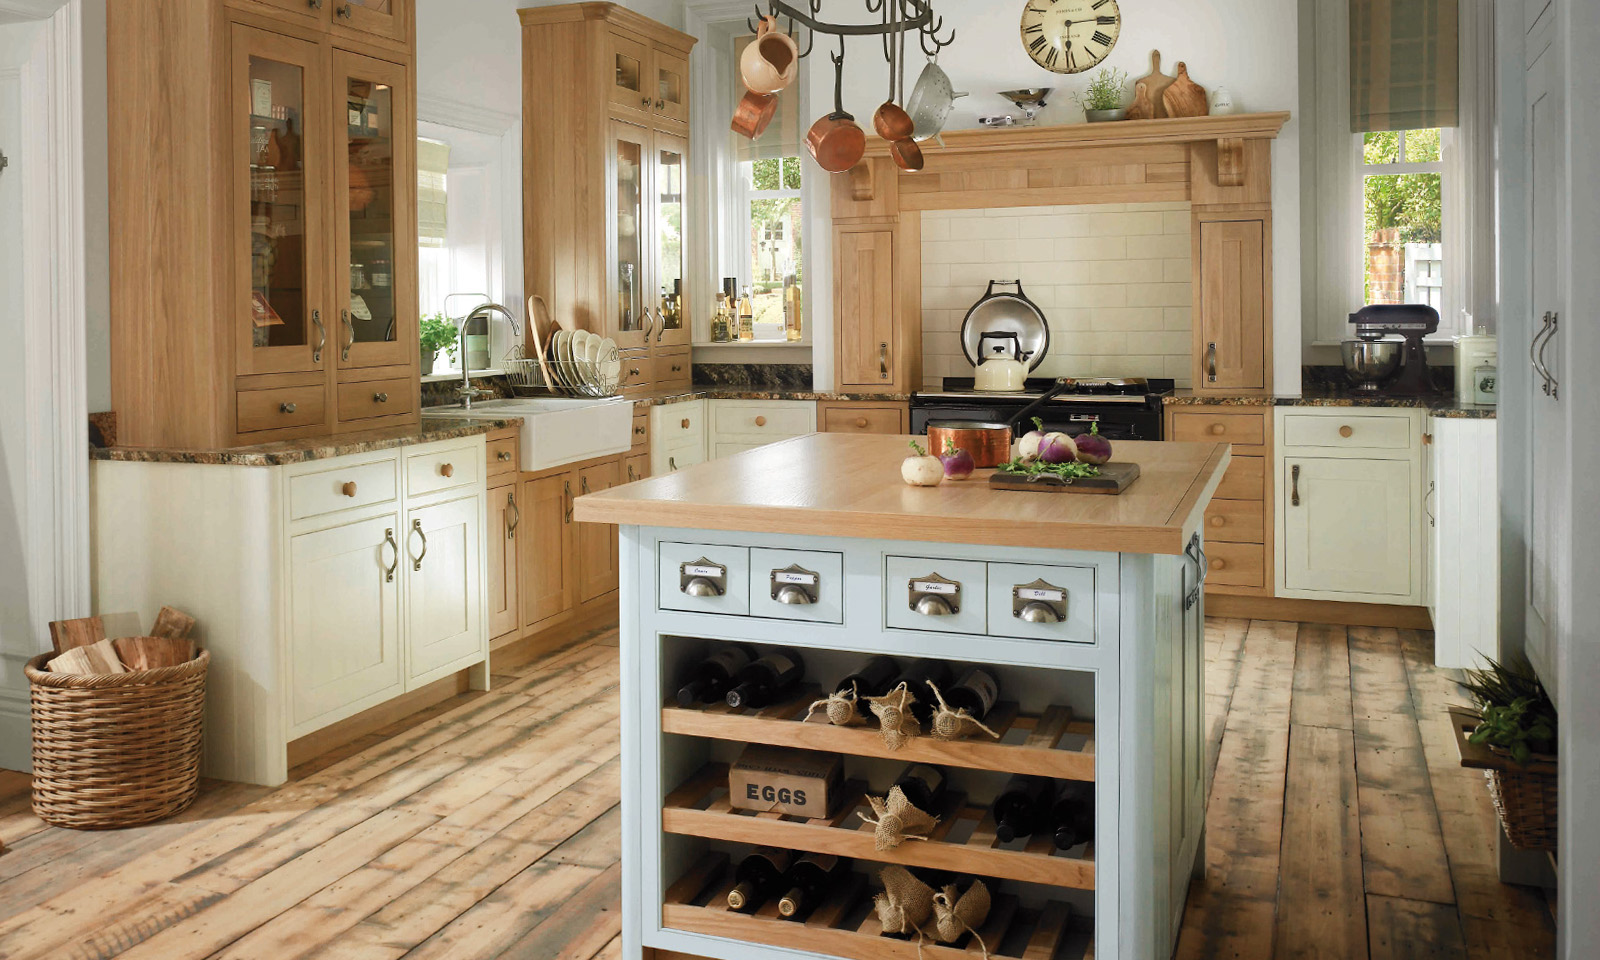 Pluckley. A bespoke, handmade, hand-painted in-frame kitchen, designed for a large socially active family. Another hand-crafted kitchen manufactured by the skilled cabinet makers at Mounts Hill.